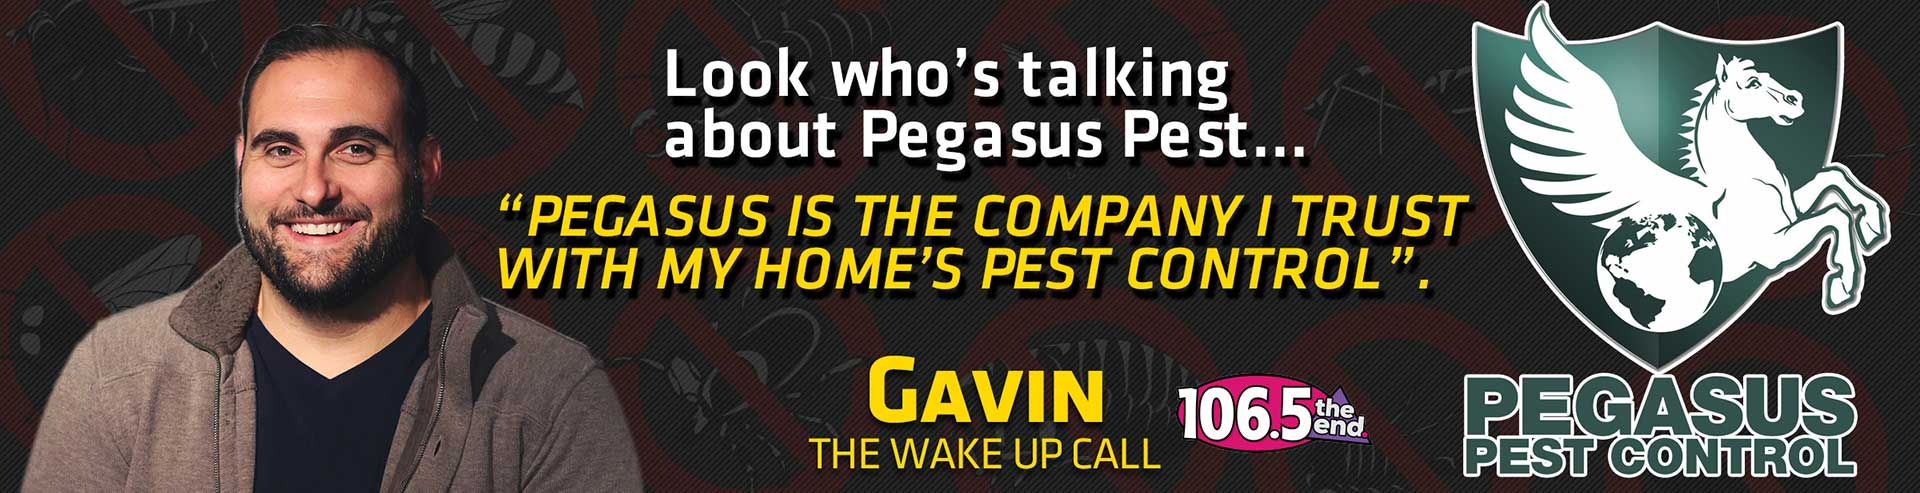 Endorsement by GAVIN from the wake up call 106.5 the end for Pegasus Pest Control